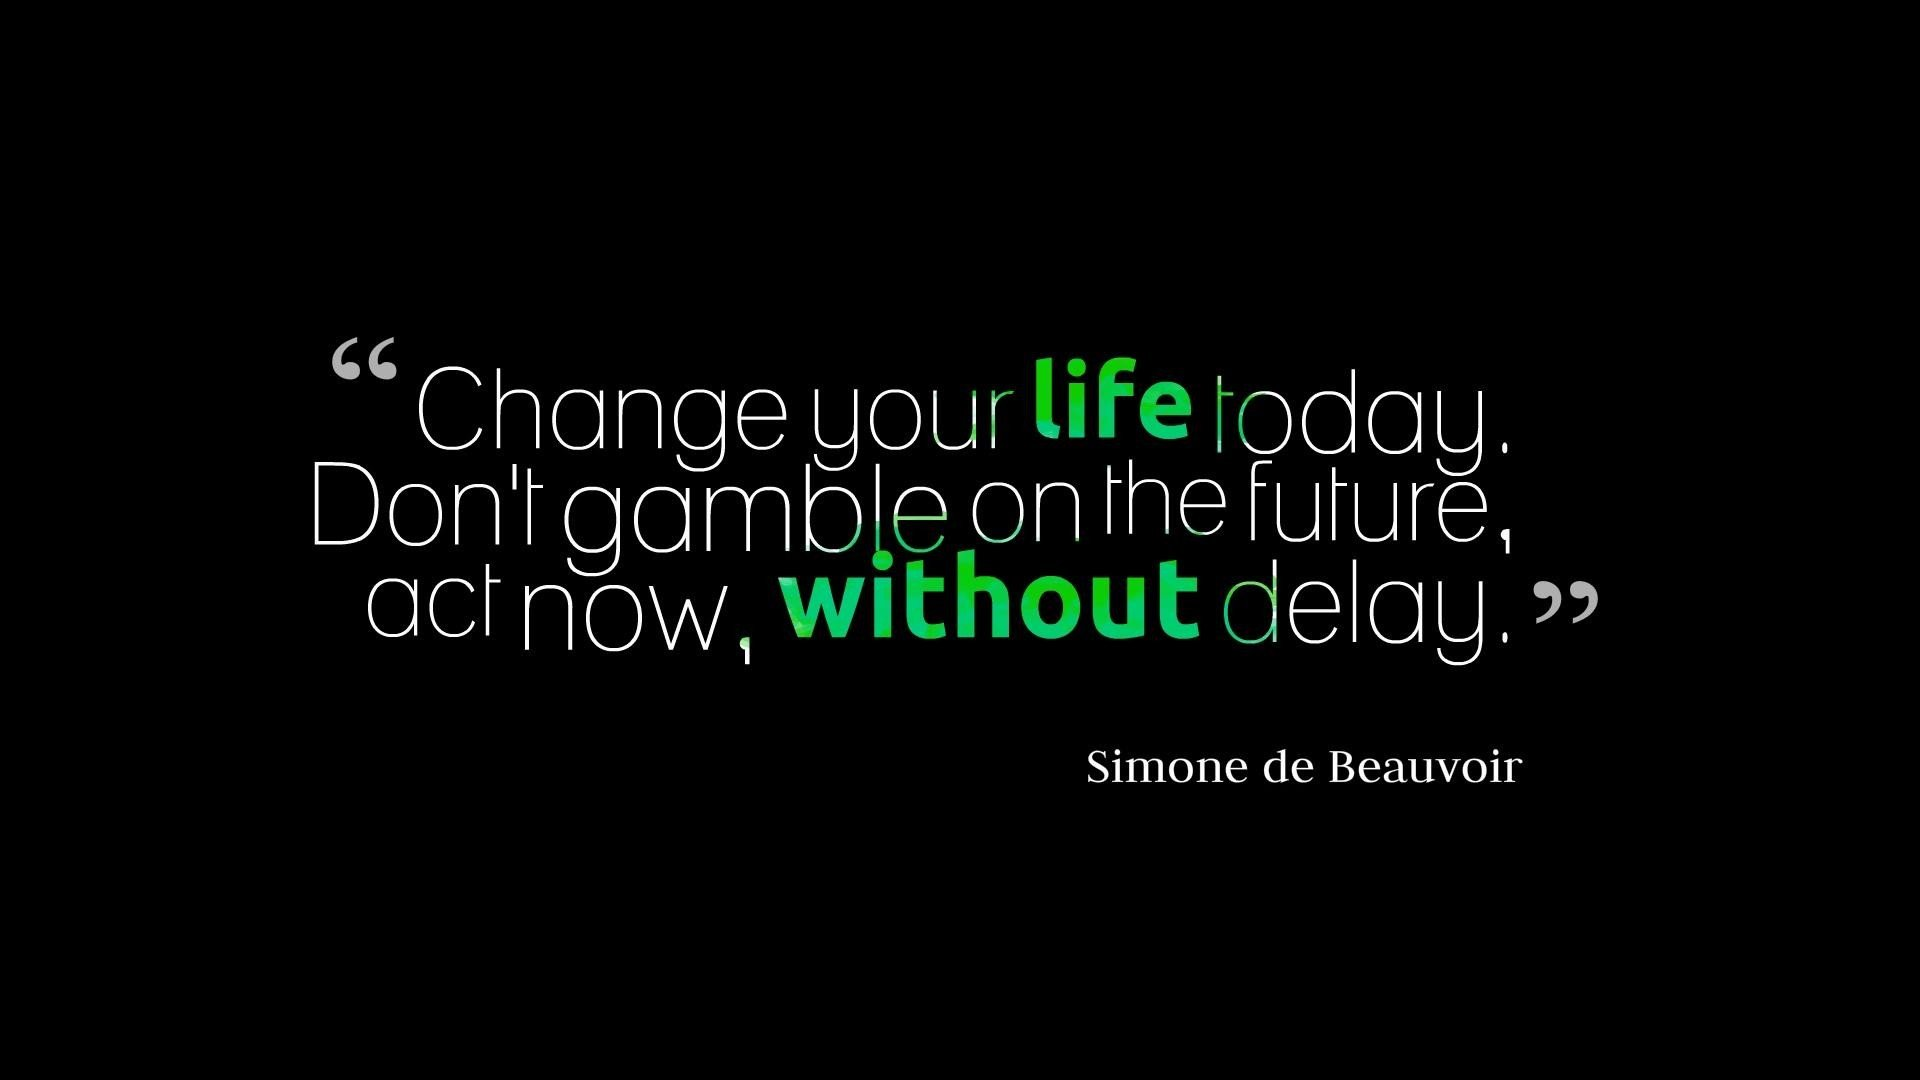 549925-change-motivation-motivational-posters-quotes-text-today